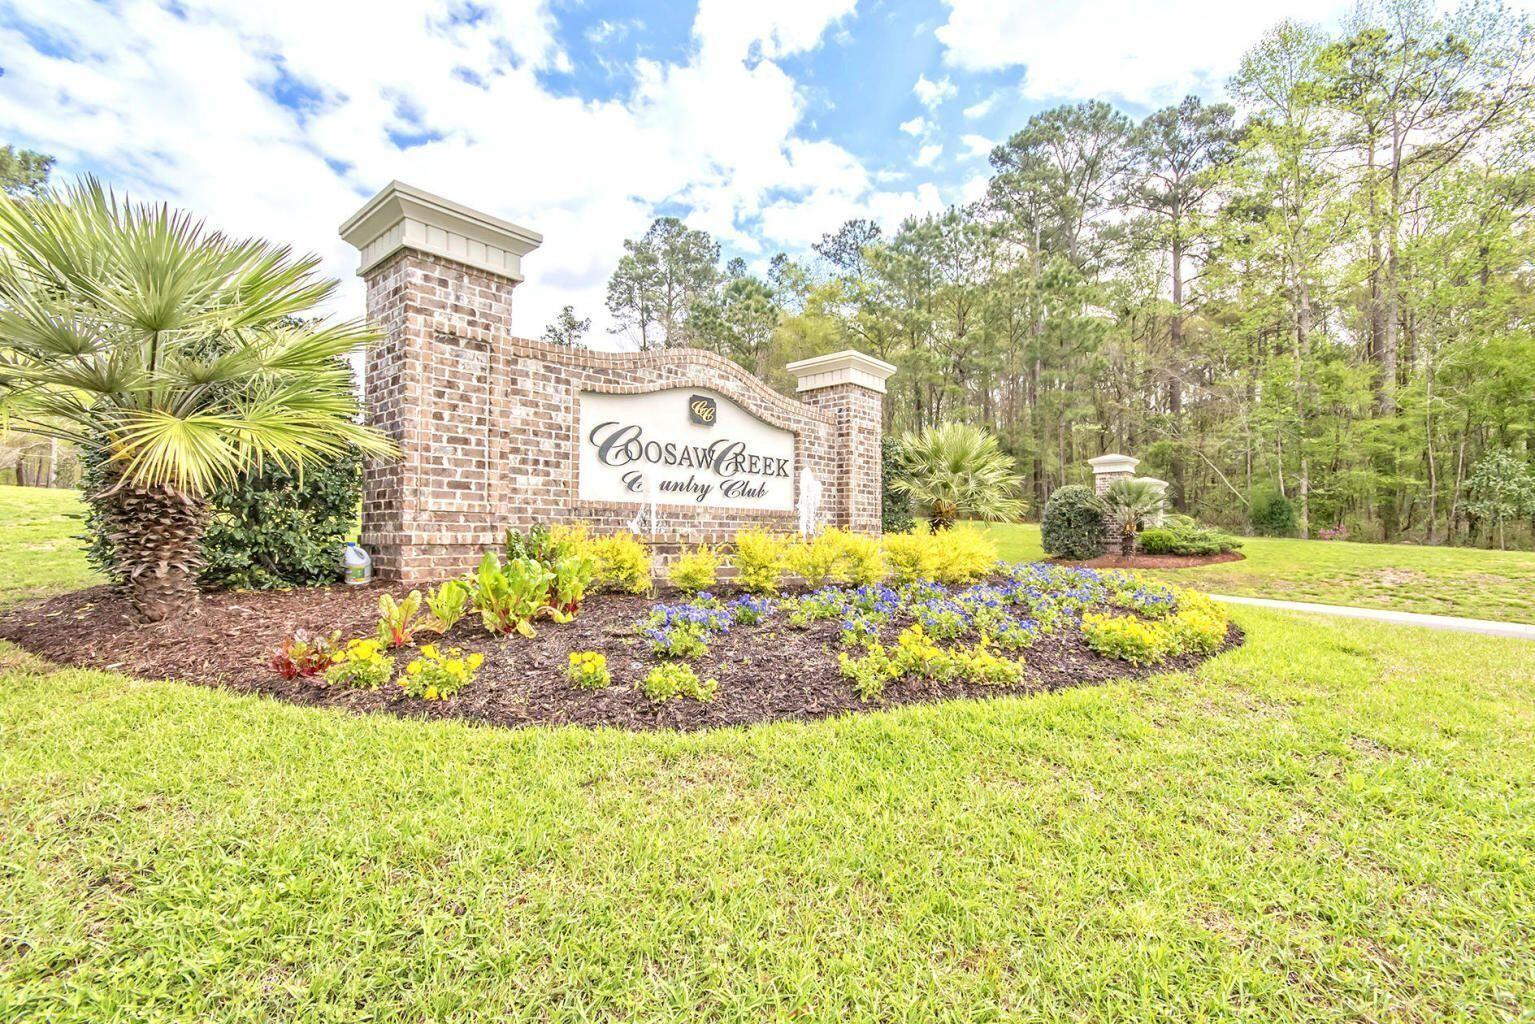 Coosaw Creek Country Club Homes For Sale - 4238 Club Course, North Charleston, SC - 63